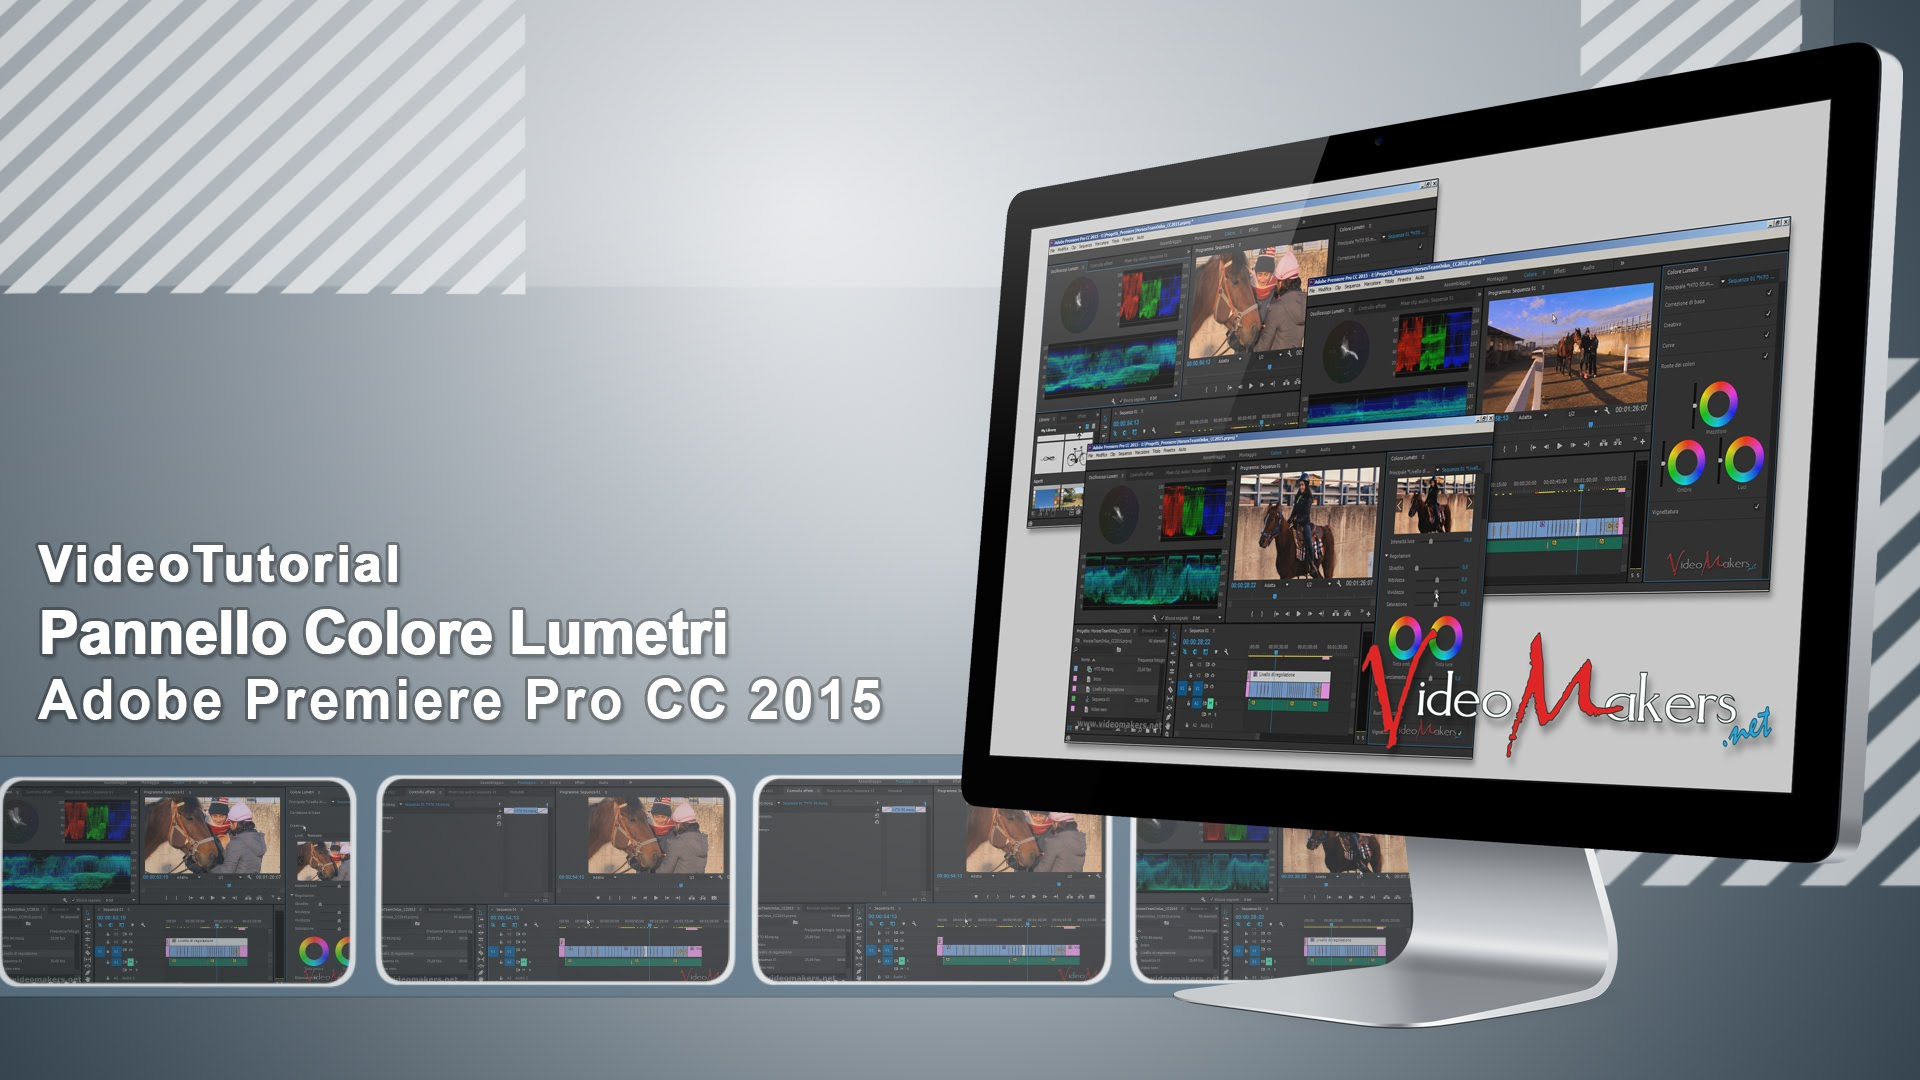 CC - Premiere Pro Review Adobe Reviews Trusted 2015